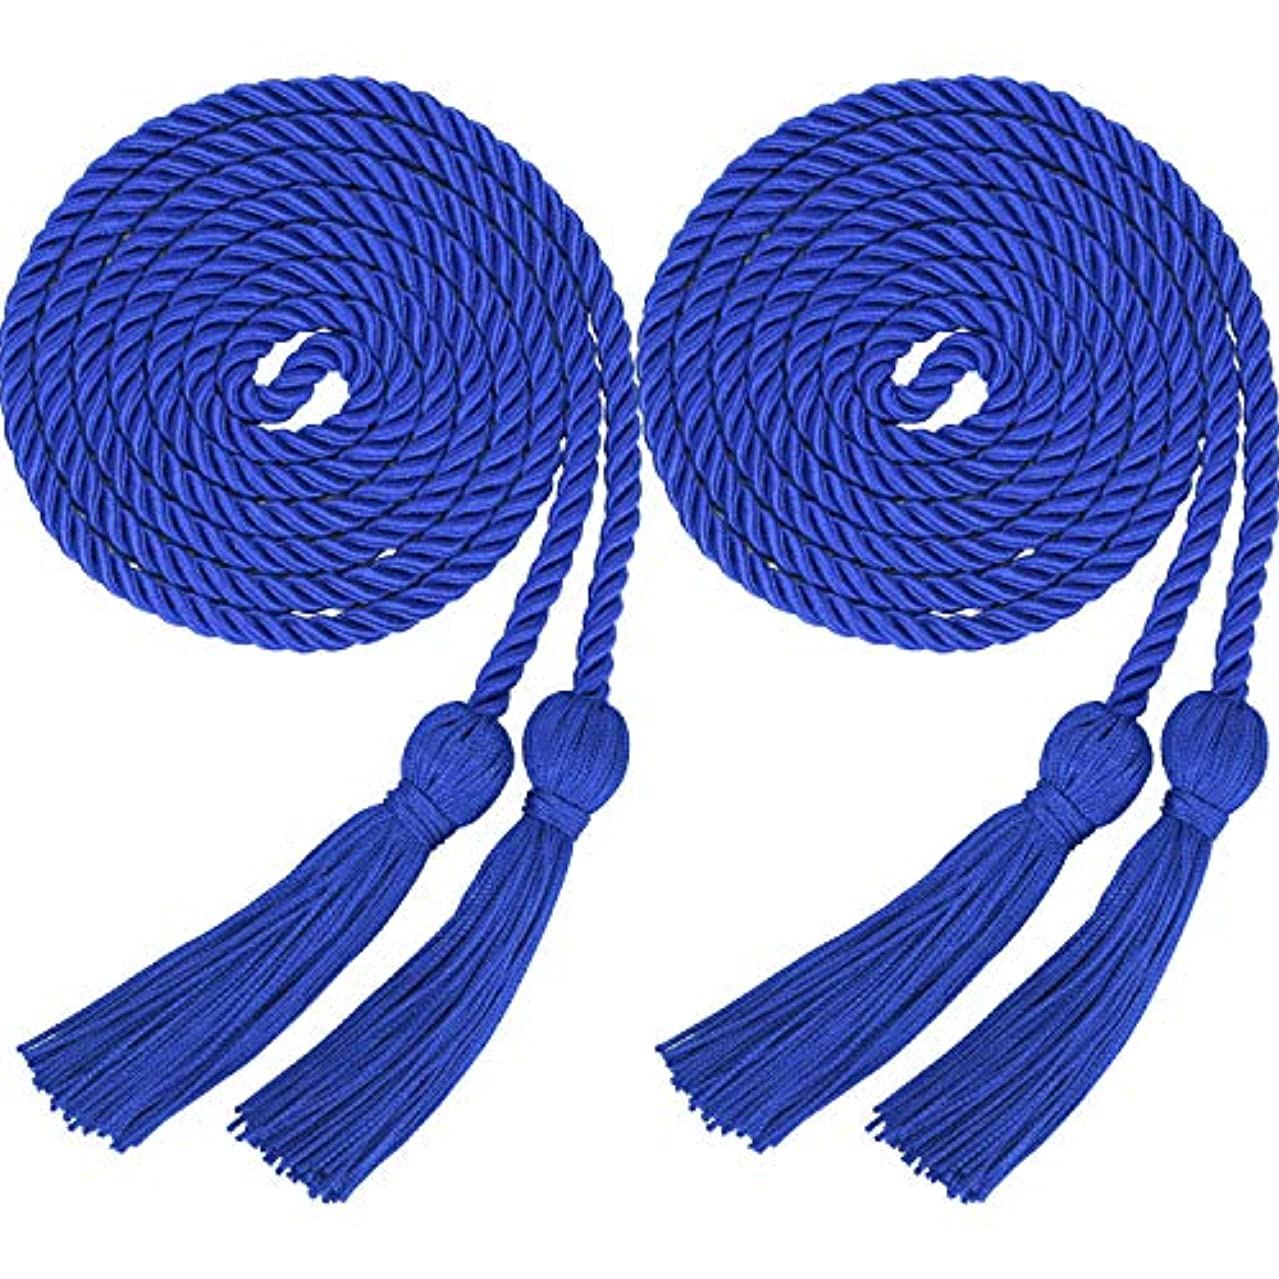 2 Pieces Graduation Cords Polyester Yarn Honor Cord with Tassel for Graduation Students (Blue)